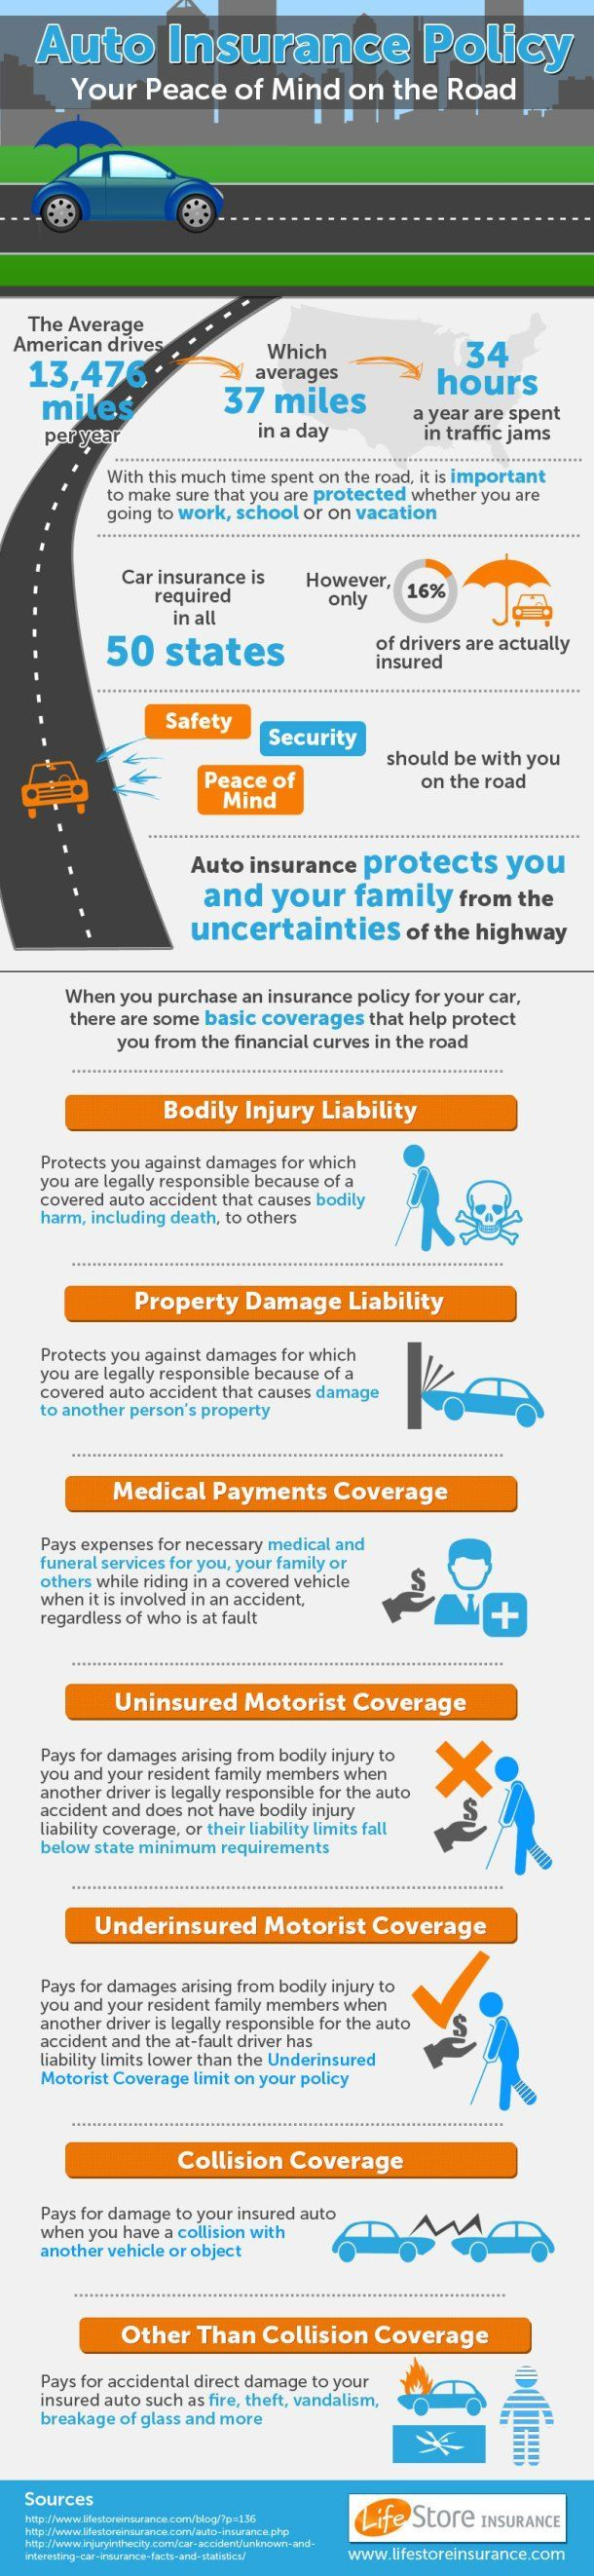 Auto Insurance Policy [INFOGRAPHIC] #auto #insurance Each of insurance company has its own term to meet the customer's needs. However, best term life insurance companies are just a few of them. Life insurance is one of the essential parts of life. Each of insurance company has its own term to meet the customer's needs. However, best term life insurance companies are just a few of them. Life insurance is one of the essential parts of life.